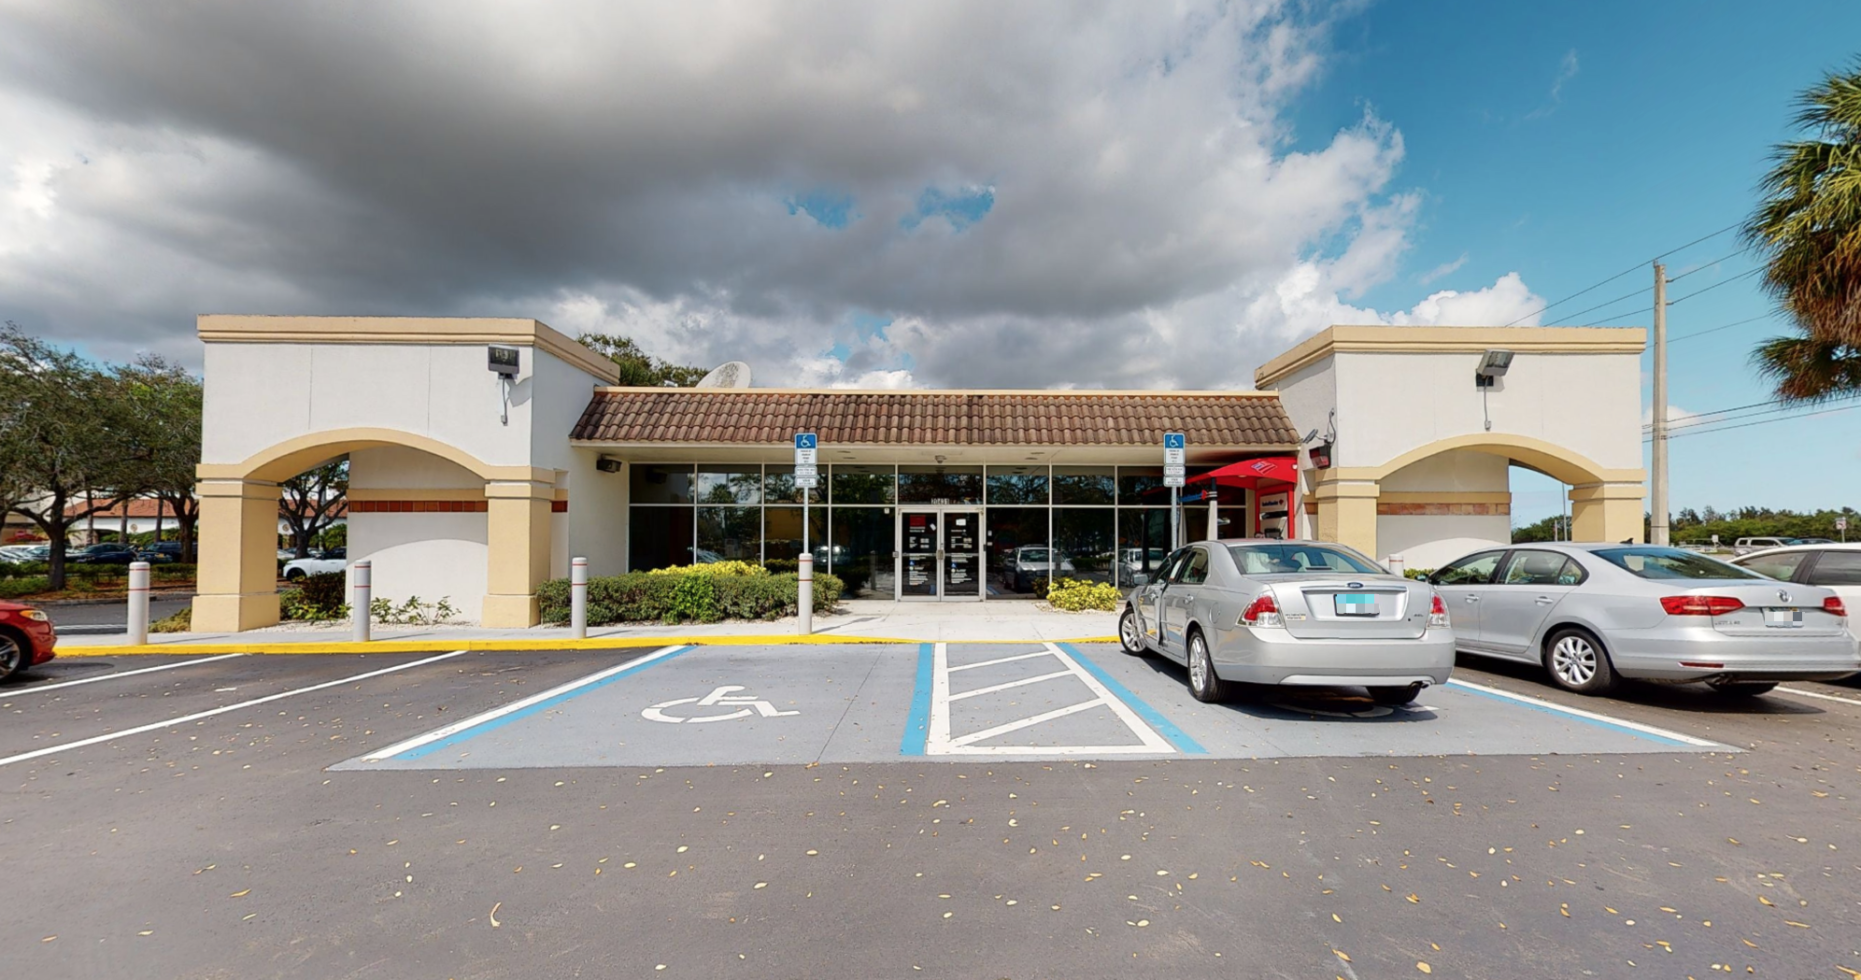 Bank of America financial center with drive-thru ATM and teller   20431 US Highway 441, Boca Raton, FL 33498